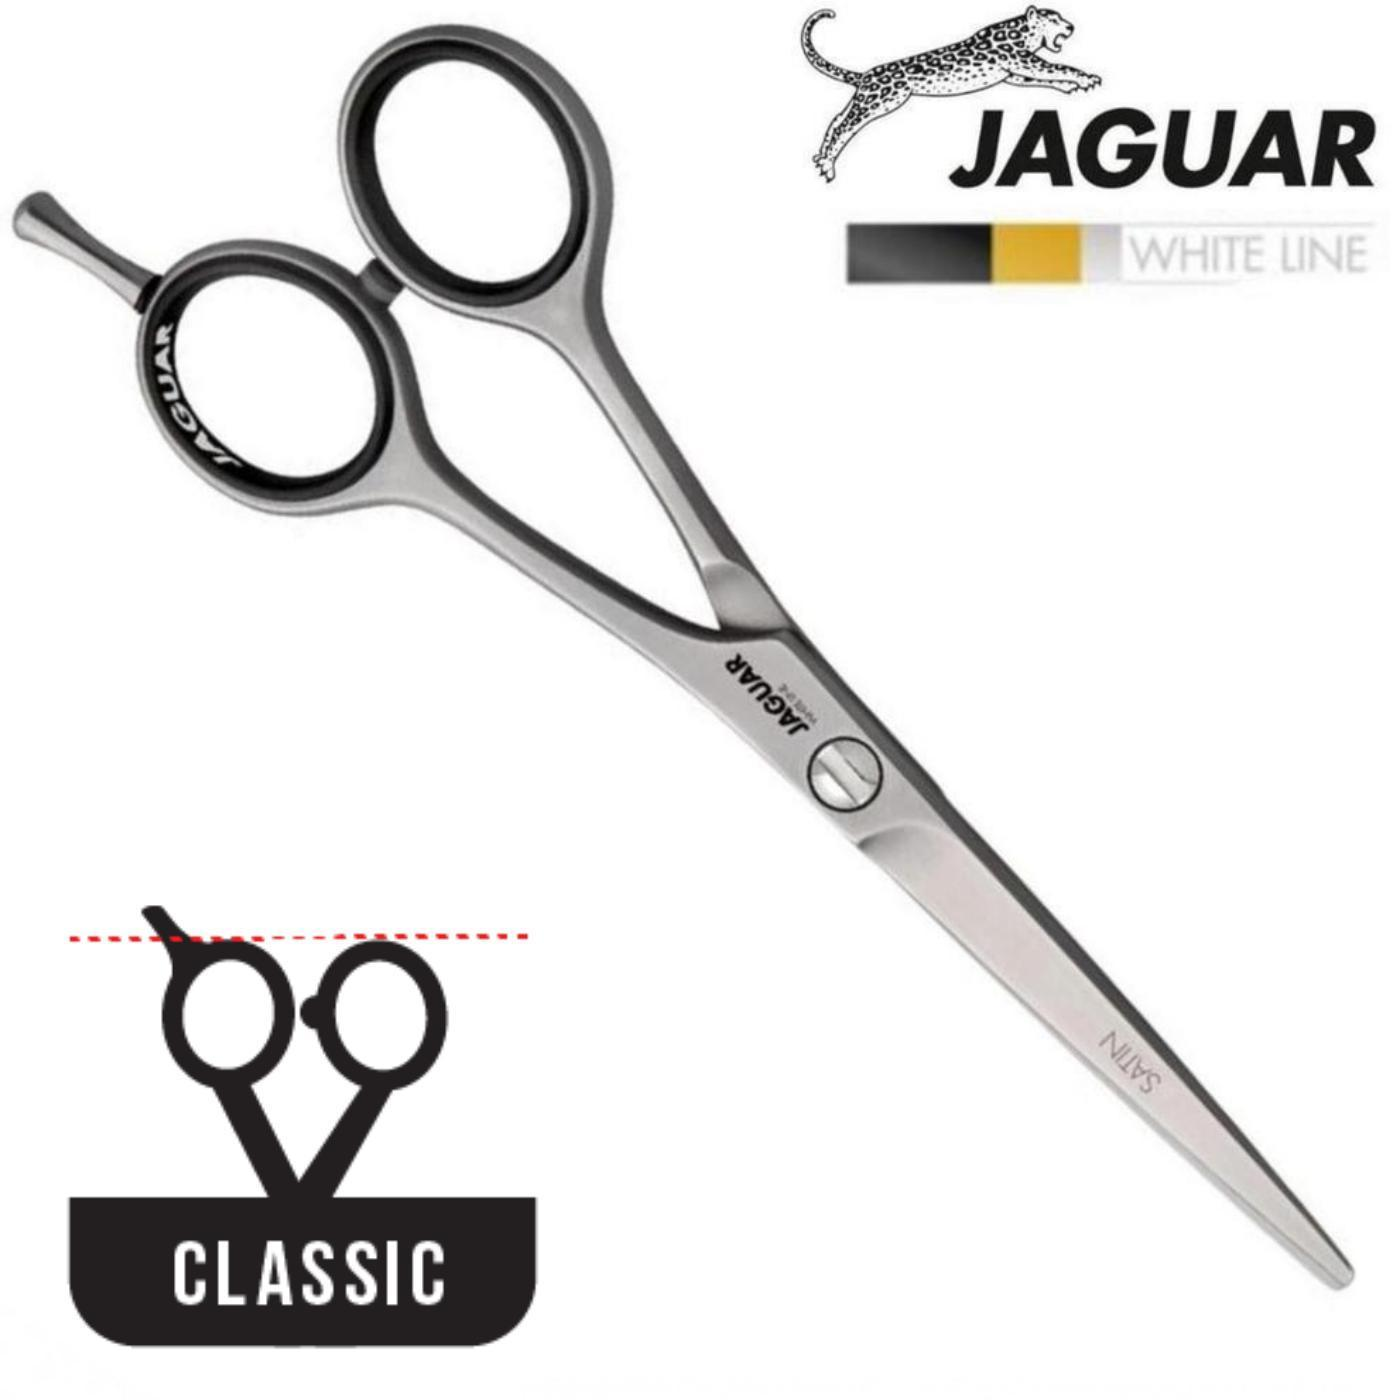 Jaguar White Line Satin Hairdressing Scissors - Japan Scissors